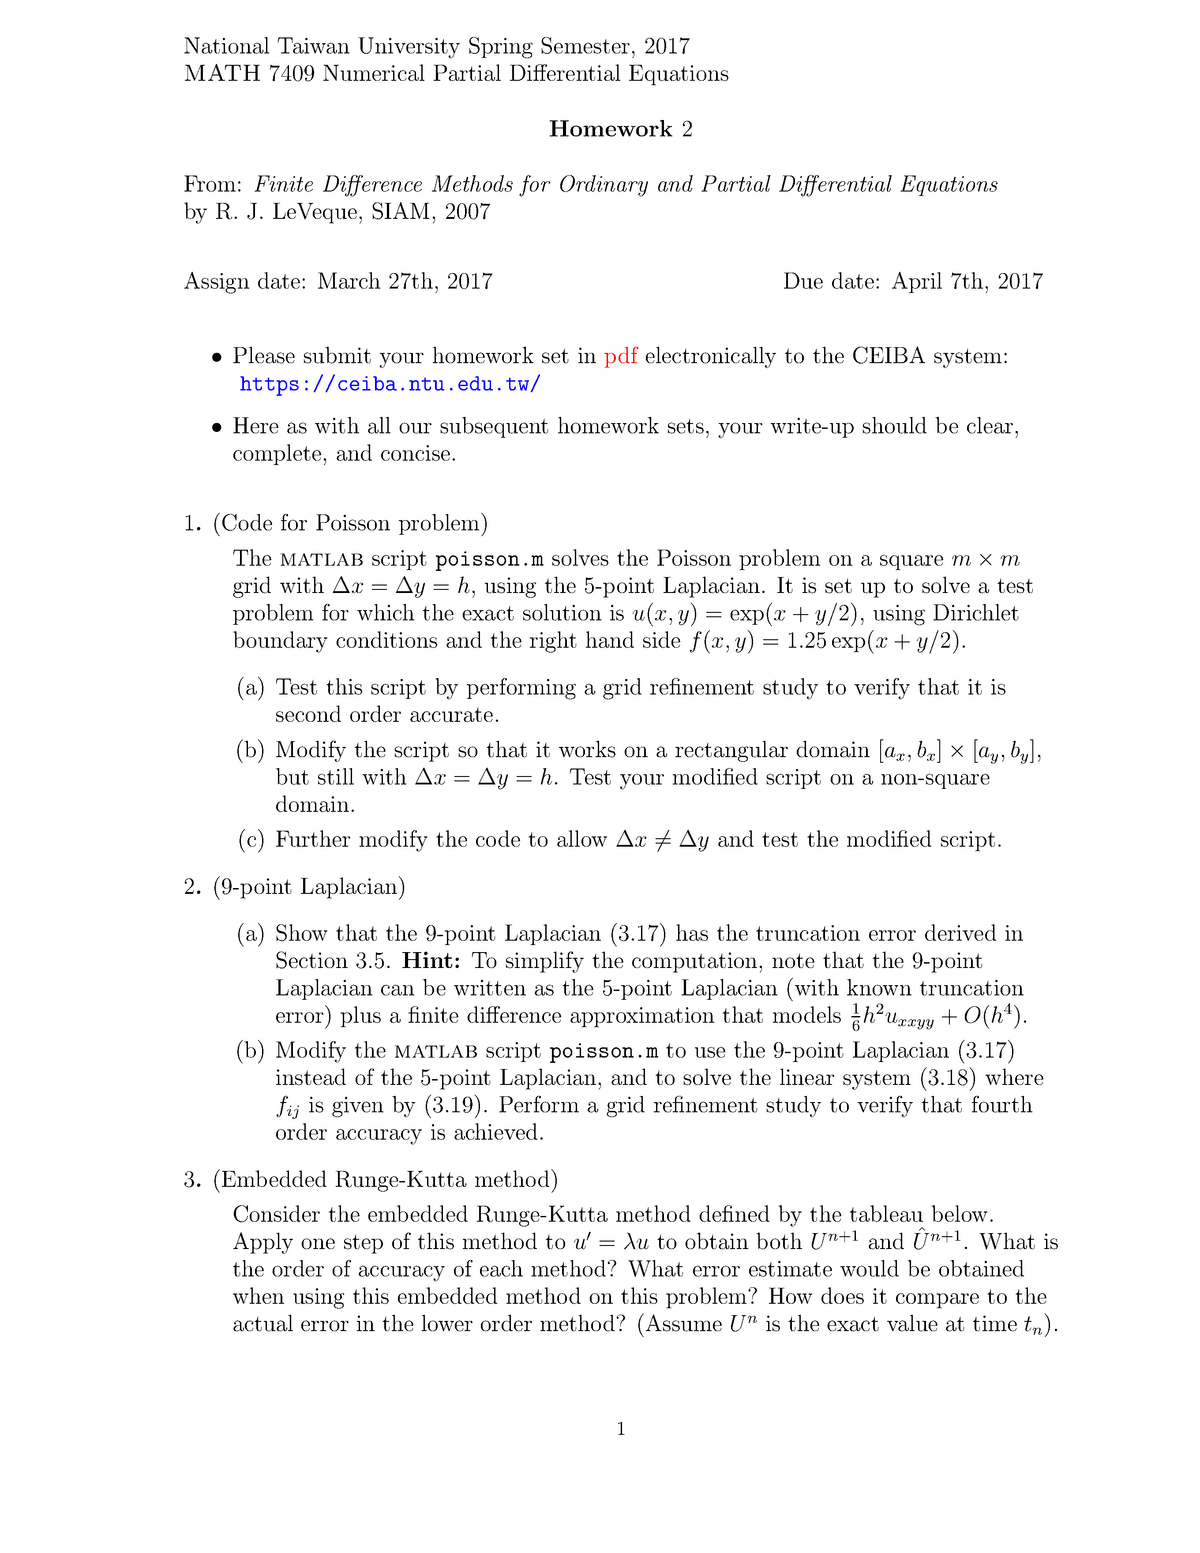 Npde hw2 - MATH 7409 Numerical Partial Differential